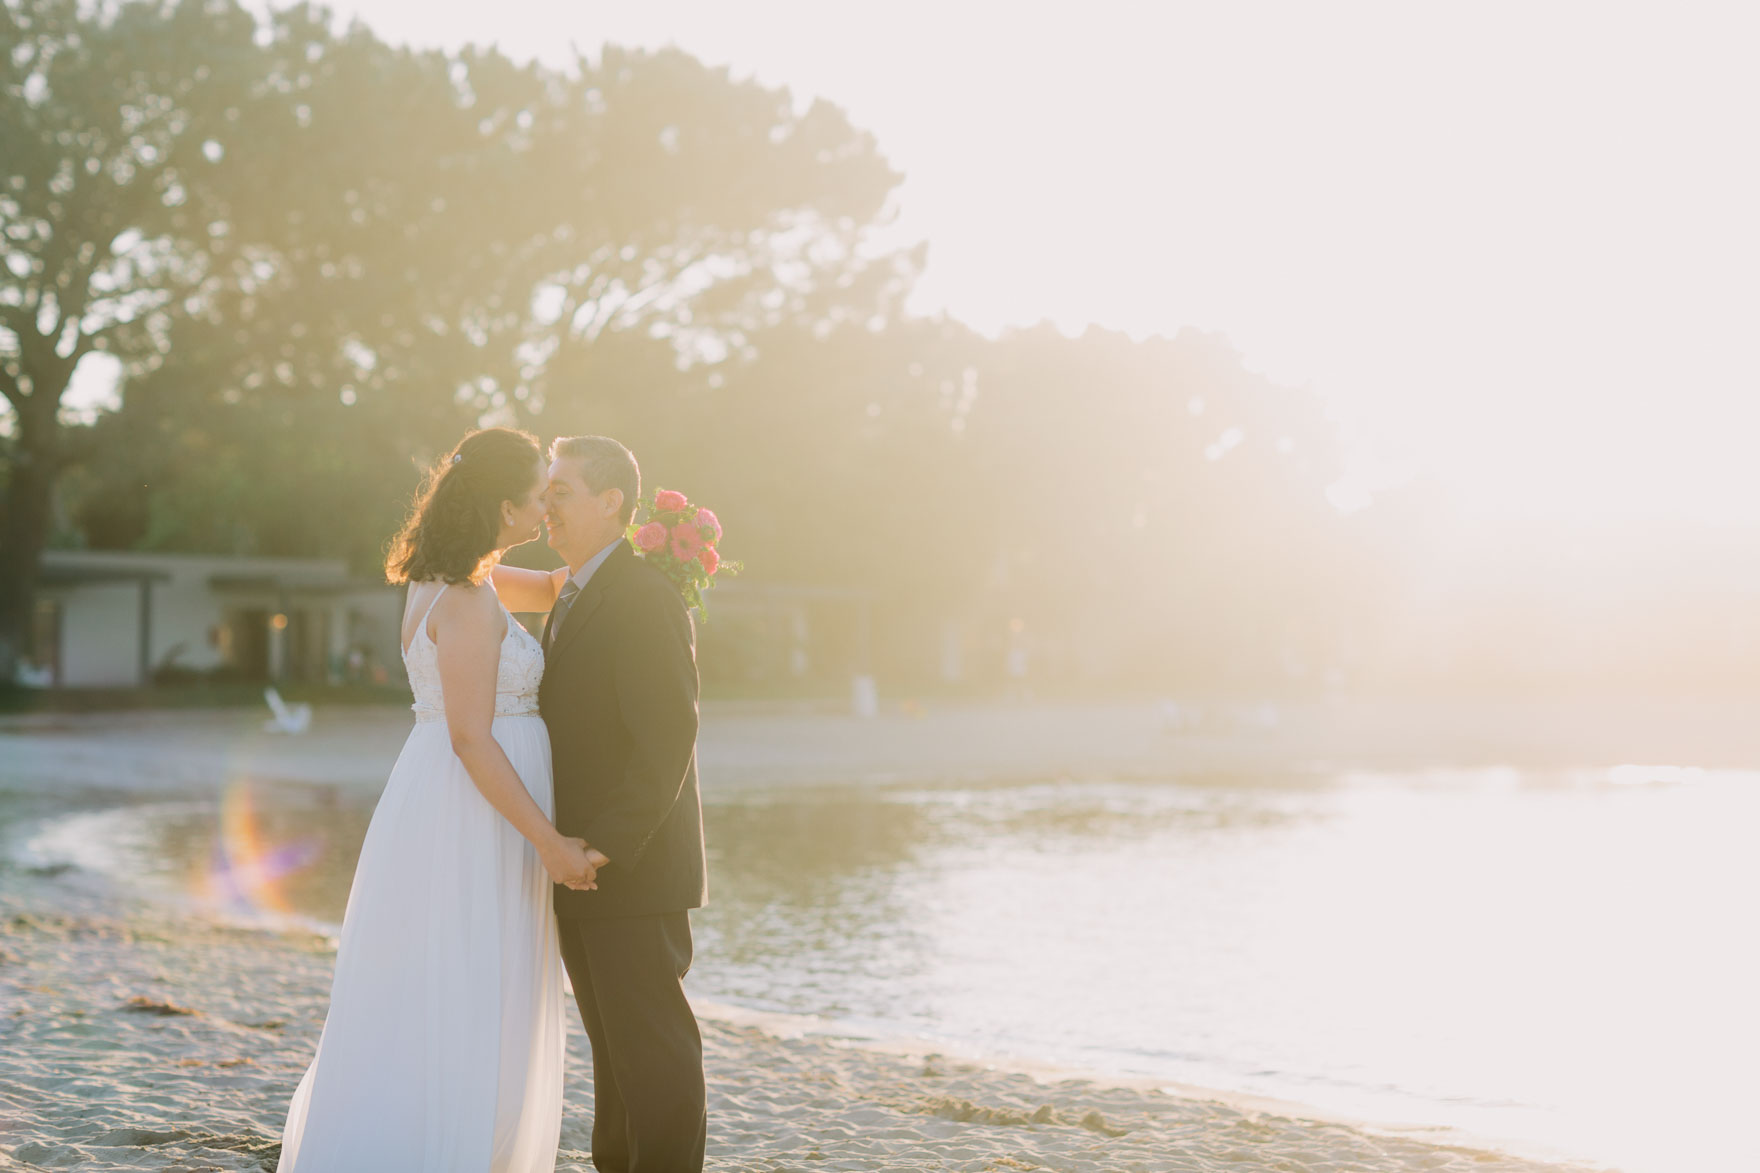 Surprise Seaside Elopement – Photo by Let's Frolic Together